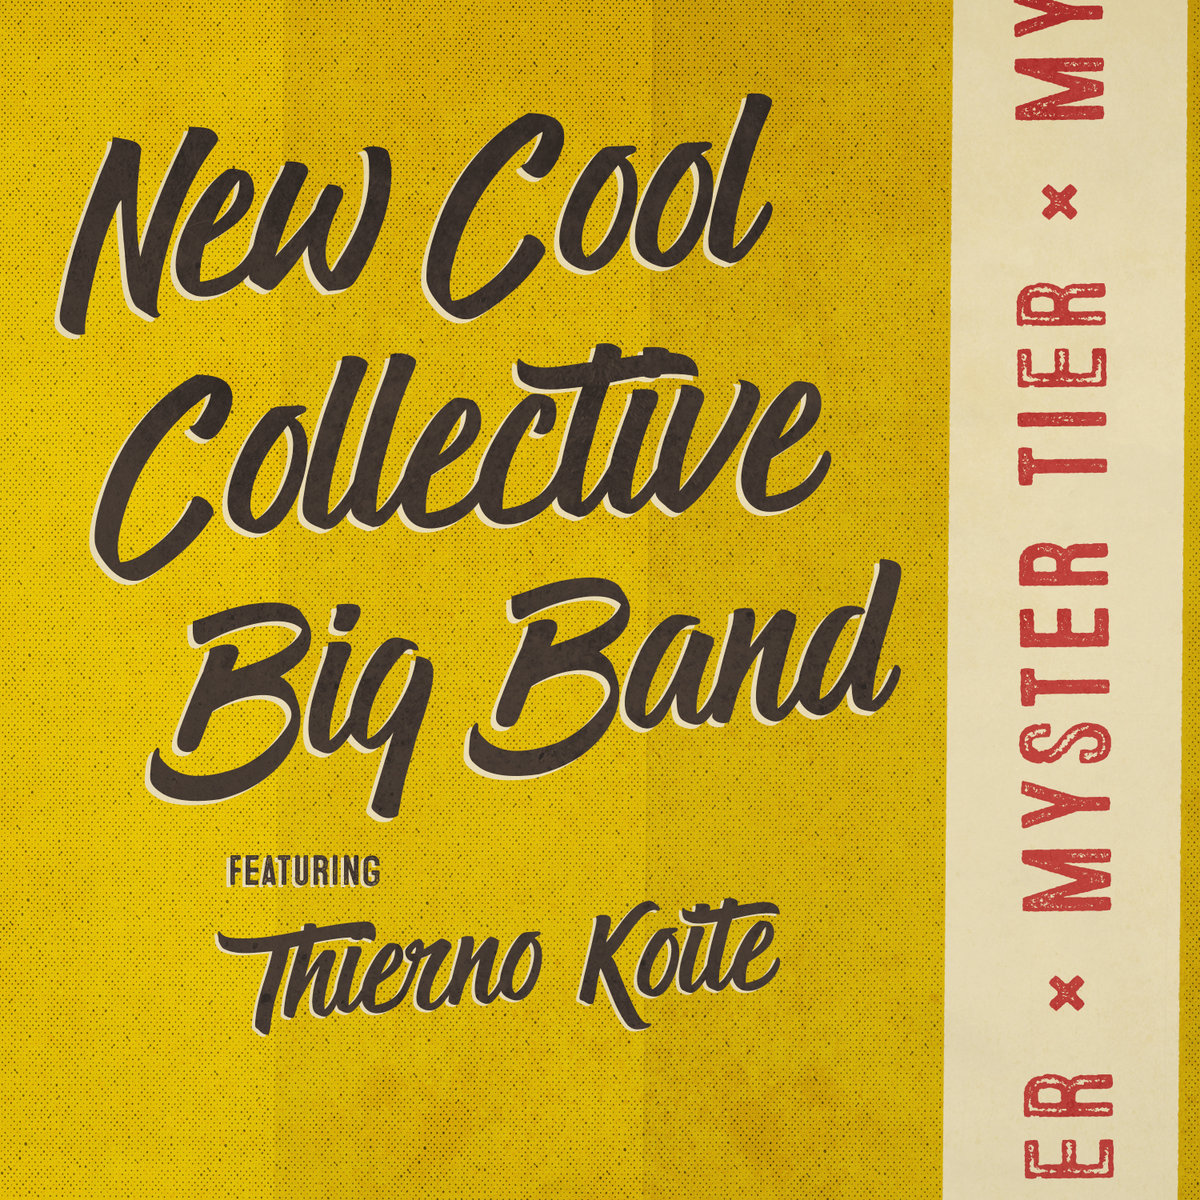 New cool collective big band featuring thierno koit new cool myster tier malvernweather Image collections